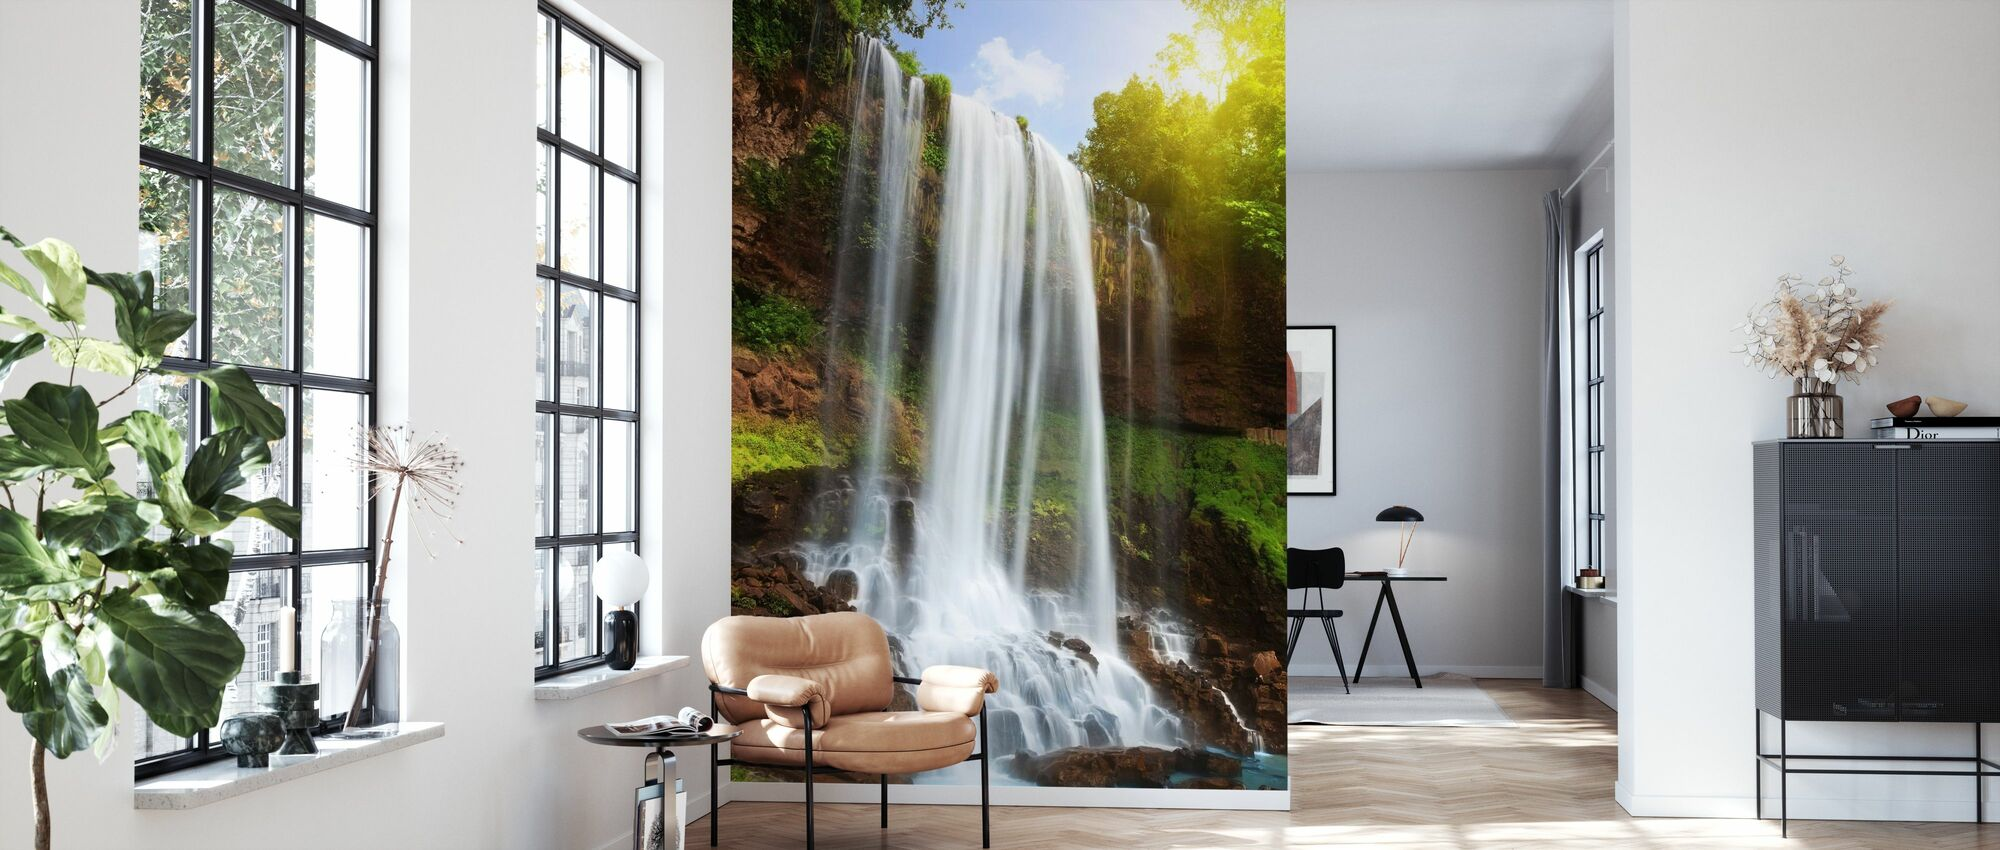 Waterfall in Rain Forest - Wallpaper - Living Room